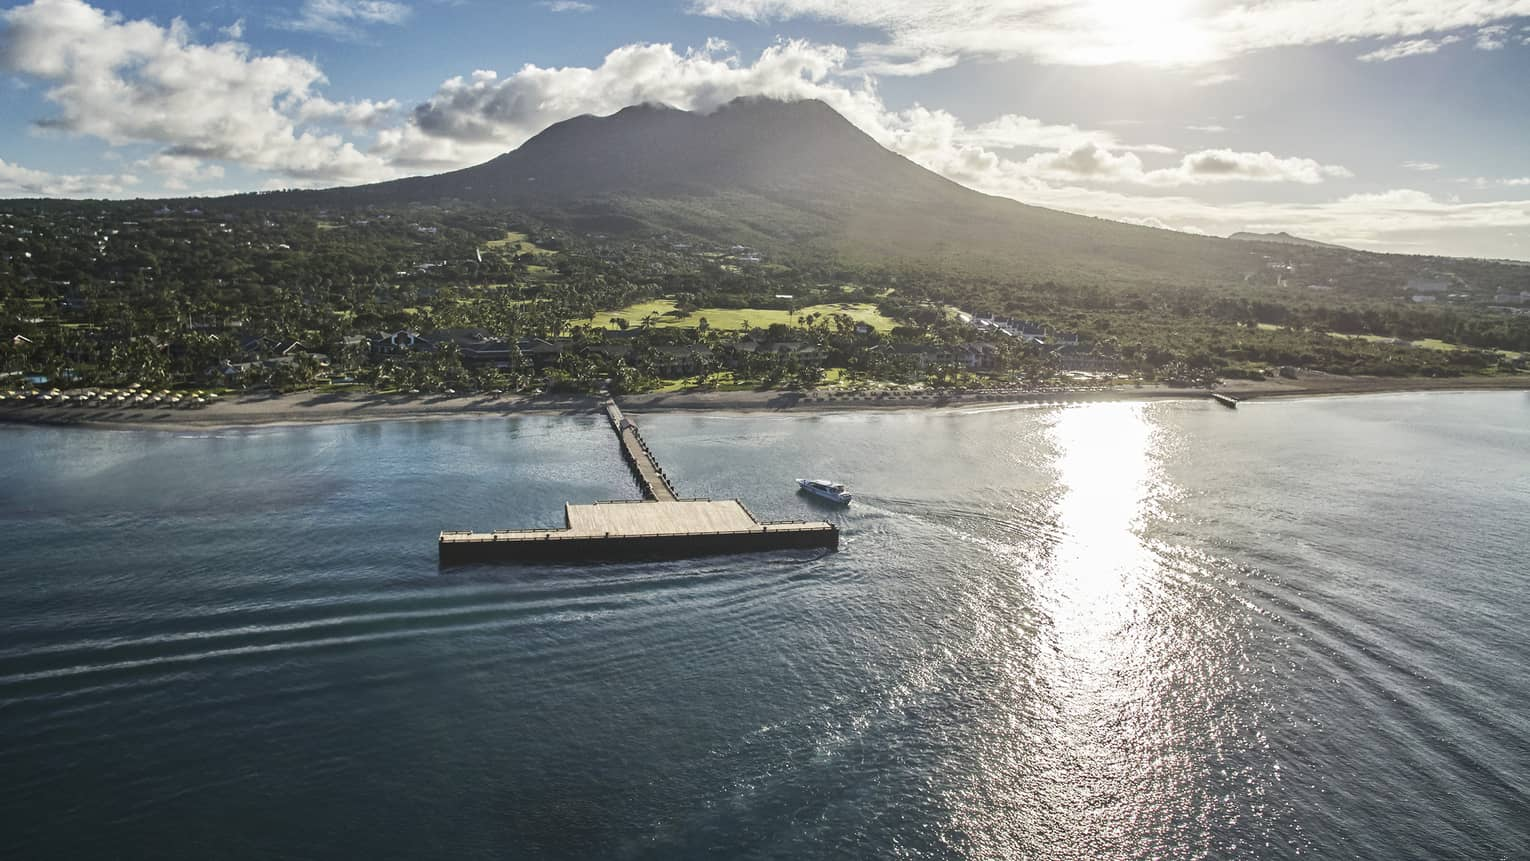 Aerial view of sun shining over Nevis mountain, lagoon with large wood bridge and dock